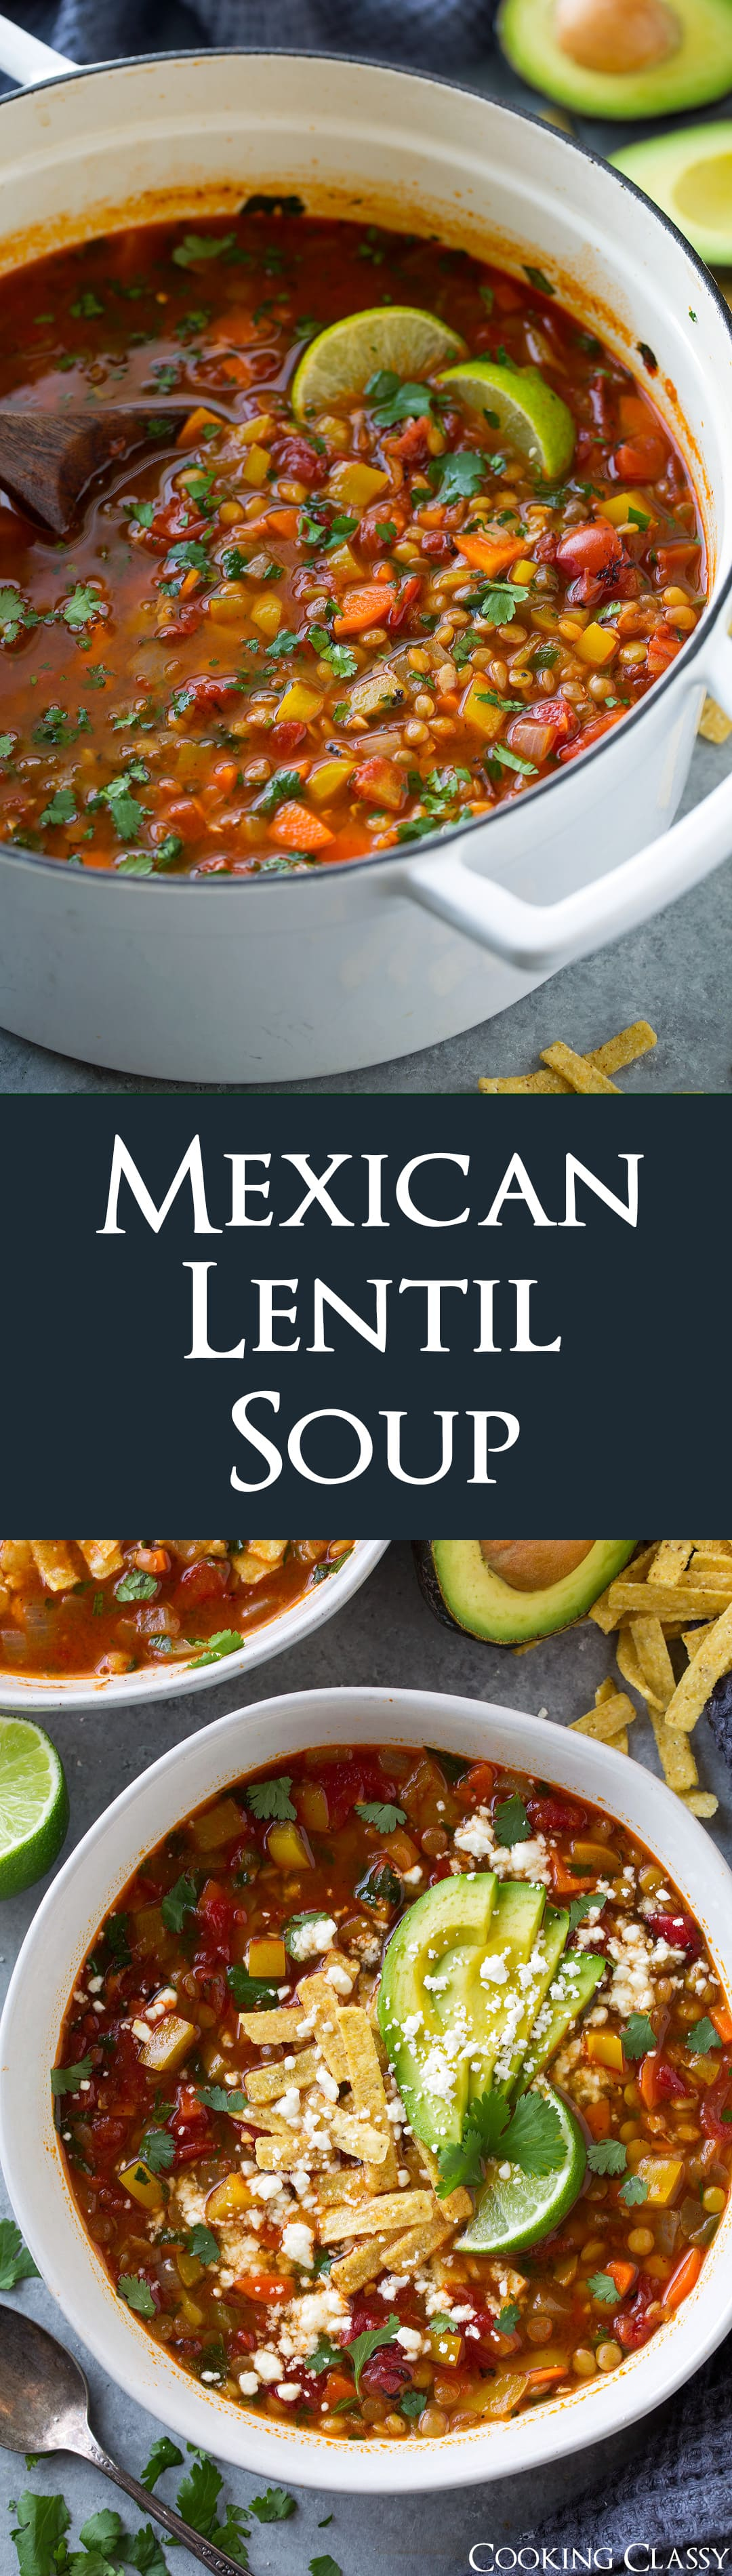 A healthy and hearty vegetarian soup everyone will love! It's packed with nutritious ingredients and all those Mexican flavors will leave you craving more. Leftovers make a delicious lunch the next day too! #soup #mexicanrecipe #lentilsoup #dinner #lunch